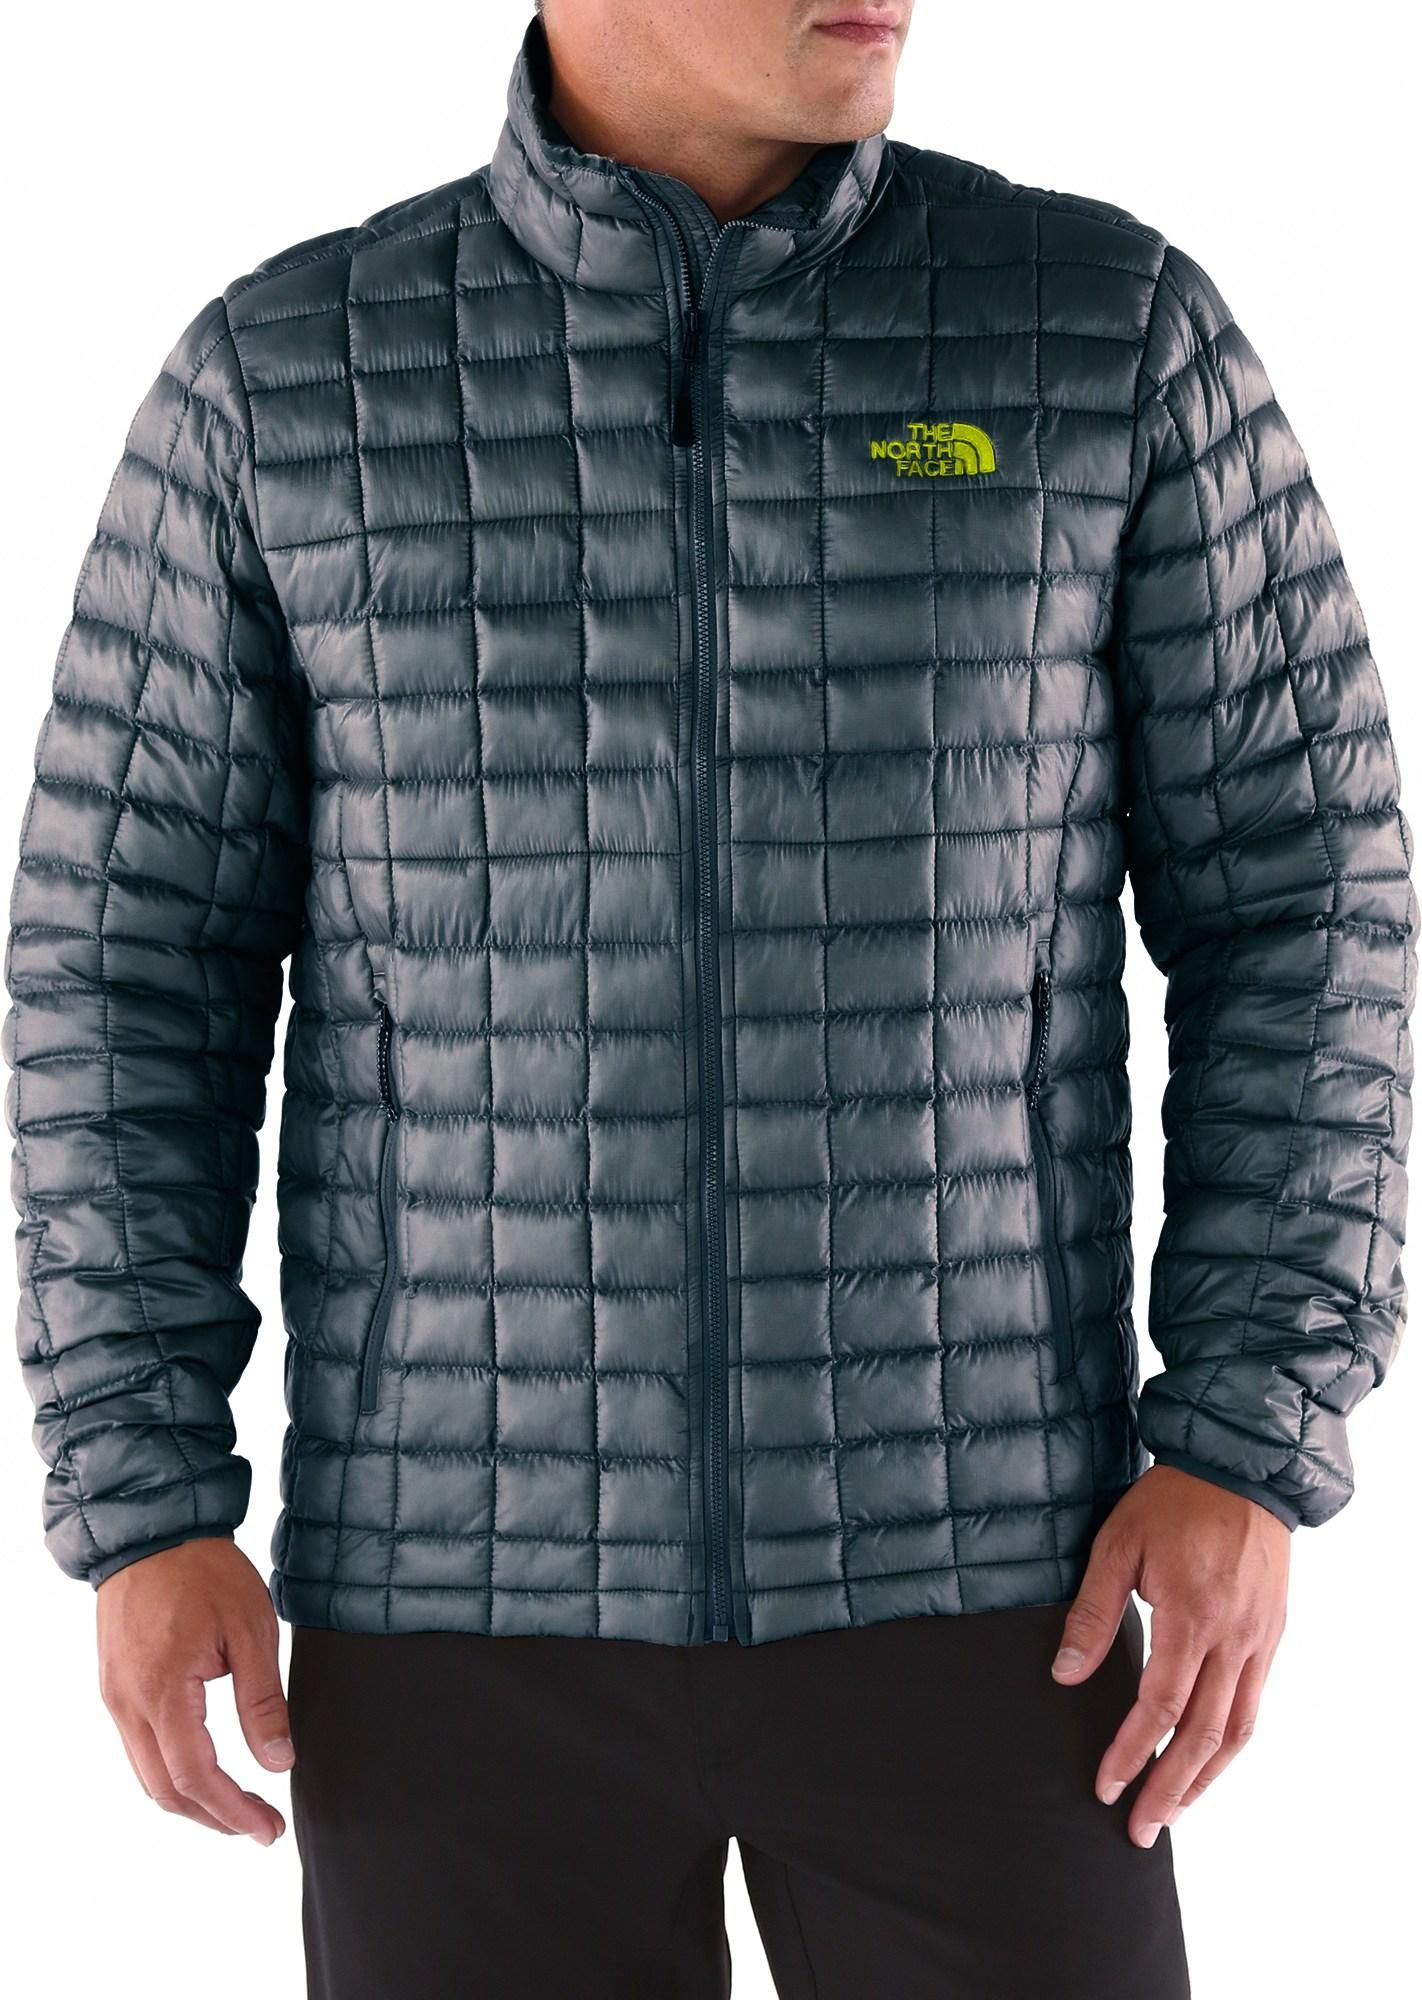 0b9e19549 ThermoBall Full-Zip Jacket - Men's | Gifts for Him | Jackets, The ...